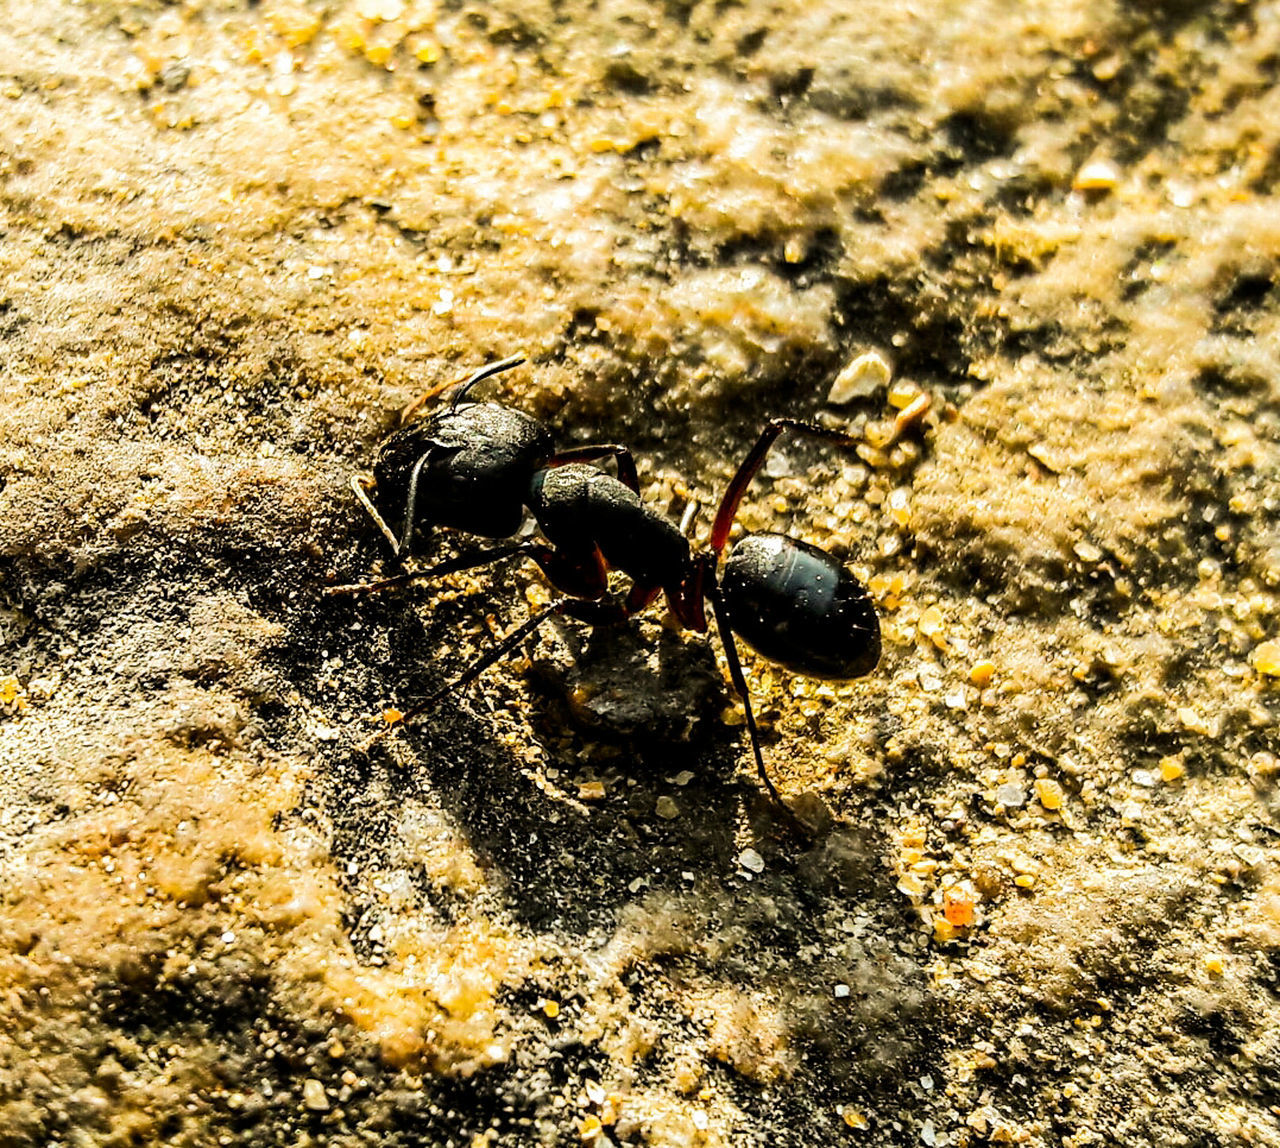 Ant Ant Ants Big Ant Black Ant Macro Beauty Macro Macro_collection Macro Photography Samsung J7 Photography Mobilephotography Mobile Photography EyeEm Best Shots EyeEm Nature Lover Eye4photography  EyeEm Gallery EyeEm Best Edits EyeEm Best Shots - Nature